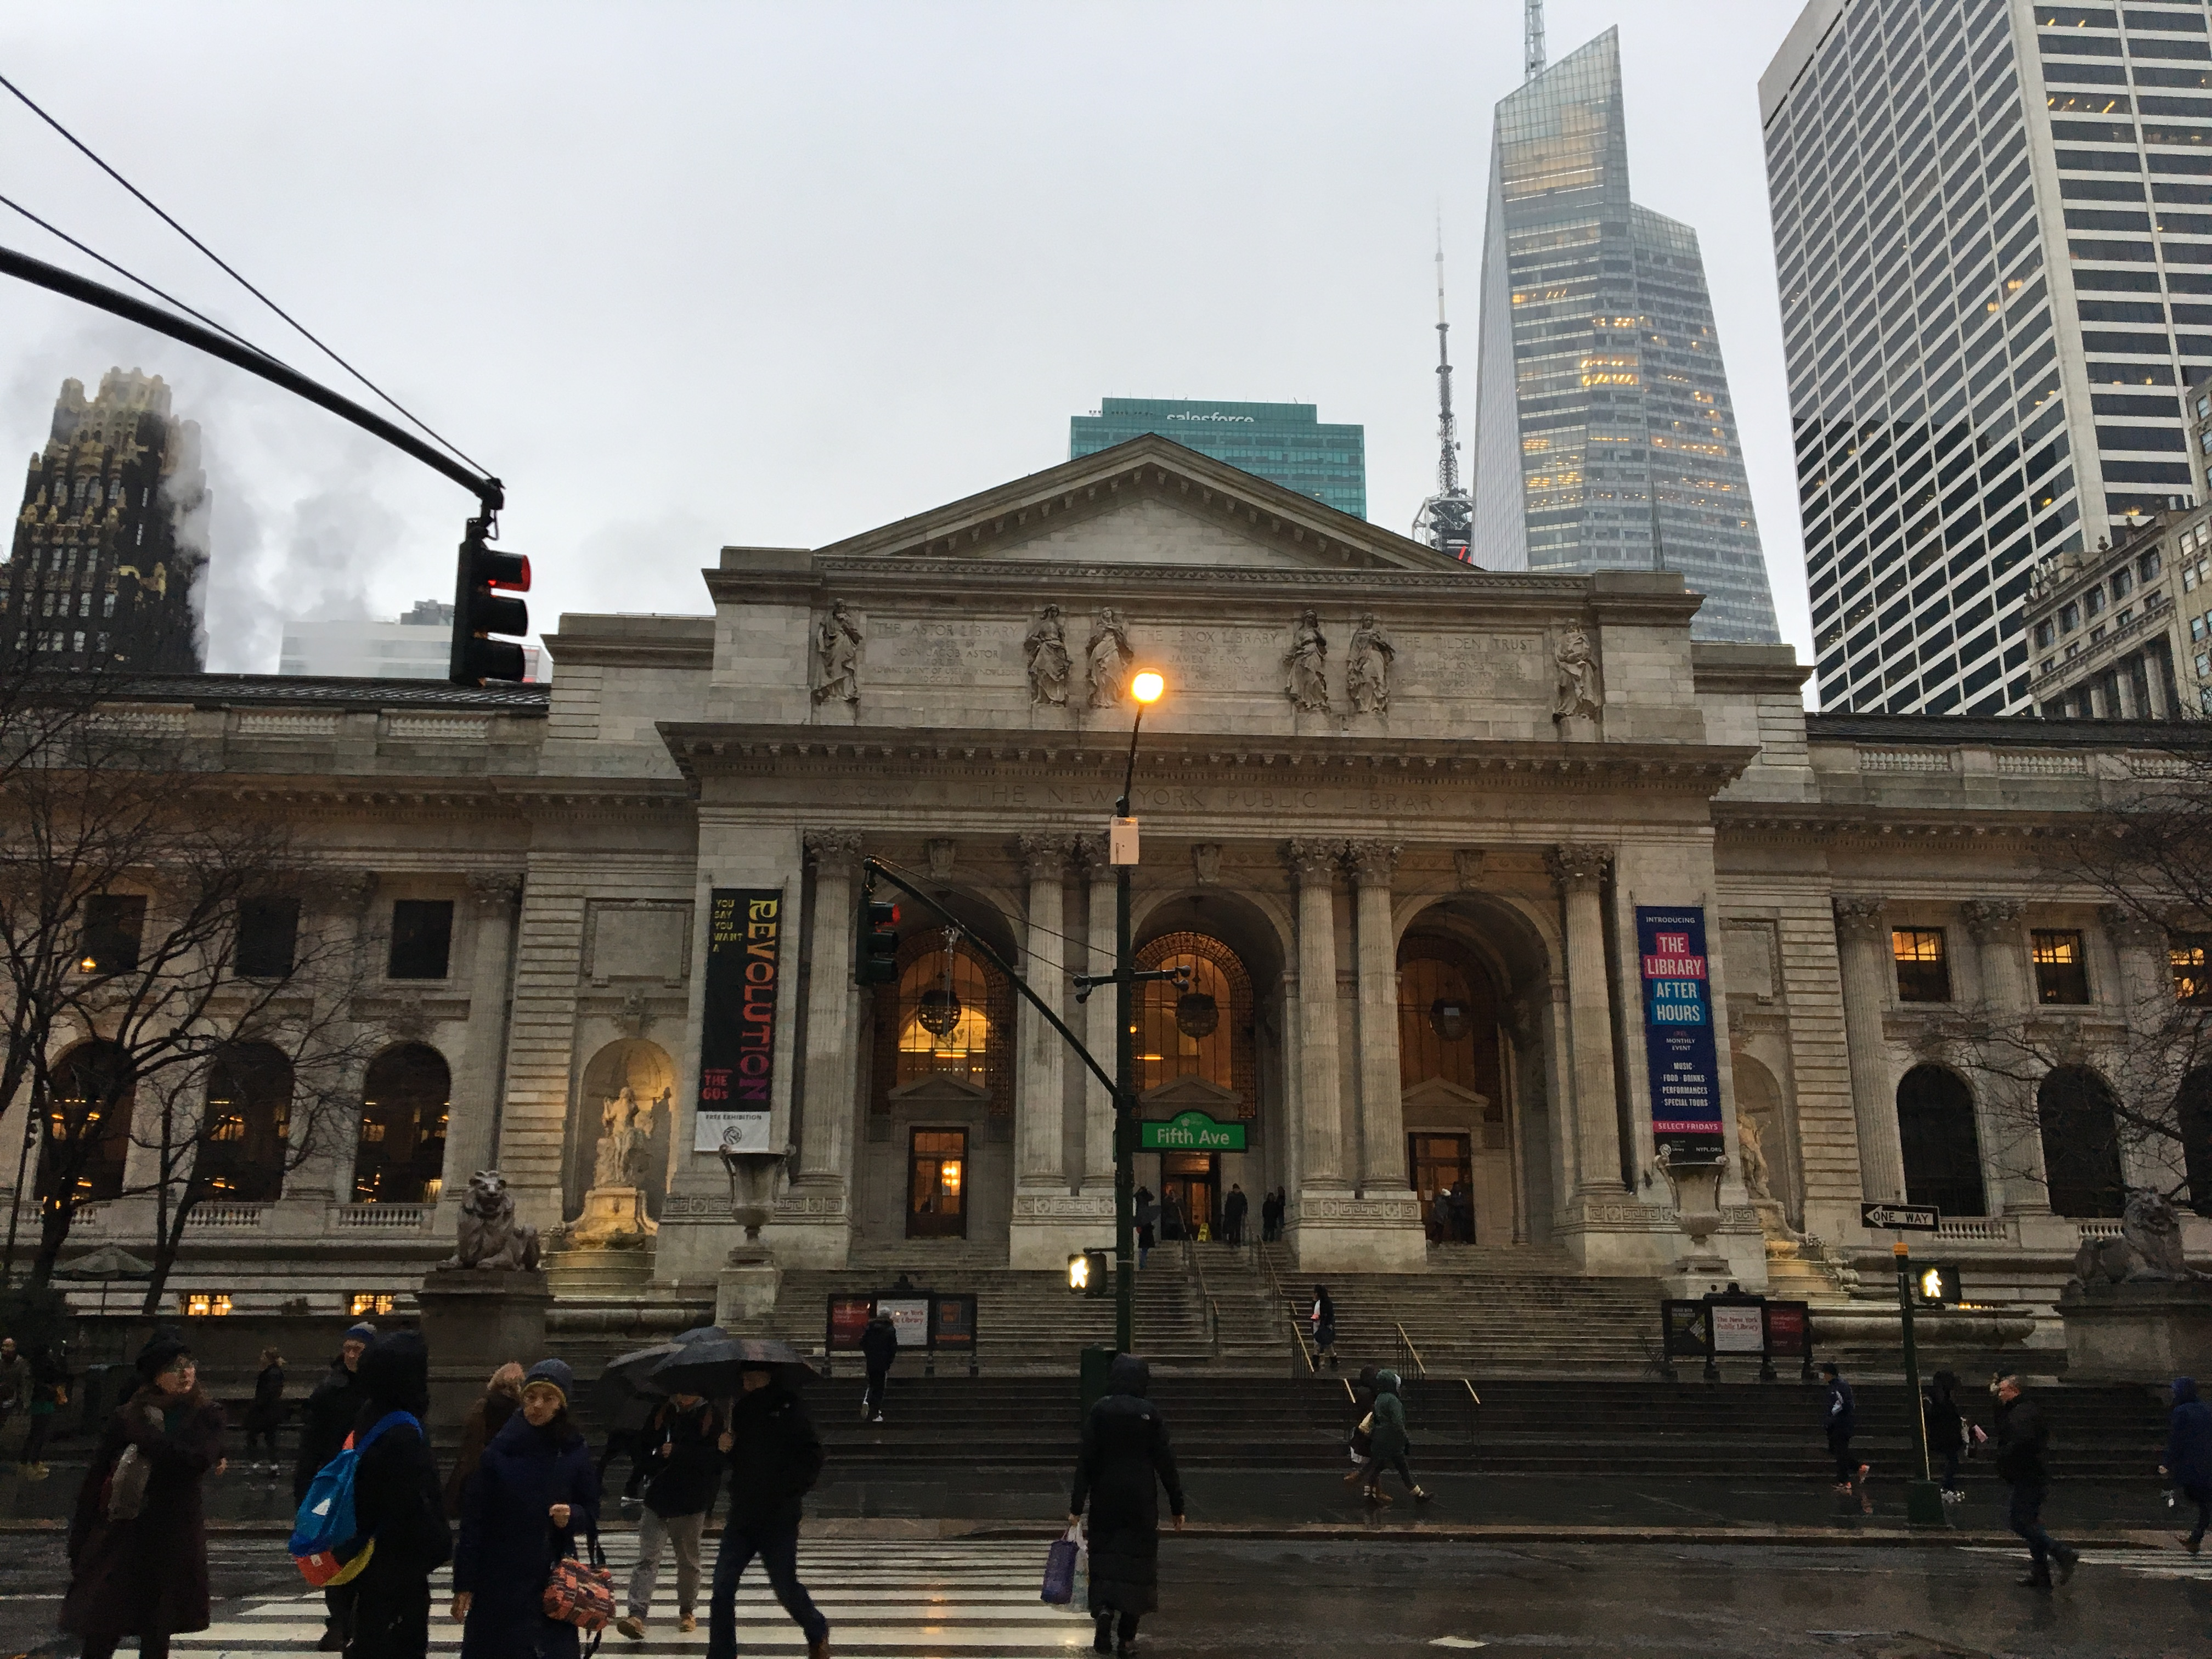 Math Museum, Library, St  Patrick's, Grand Central: NYC Part